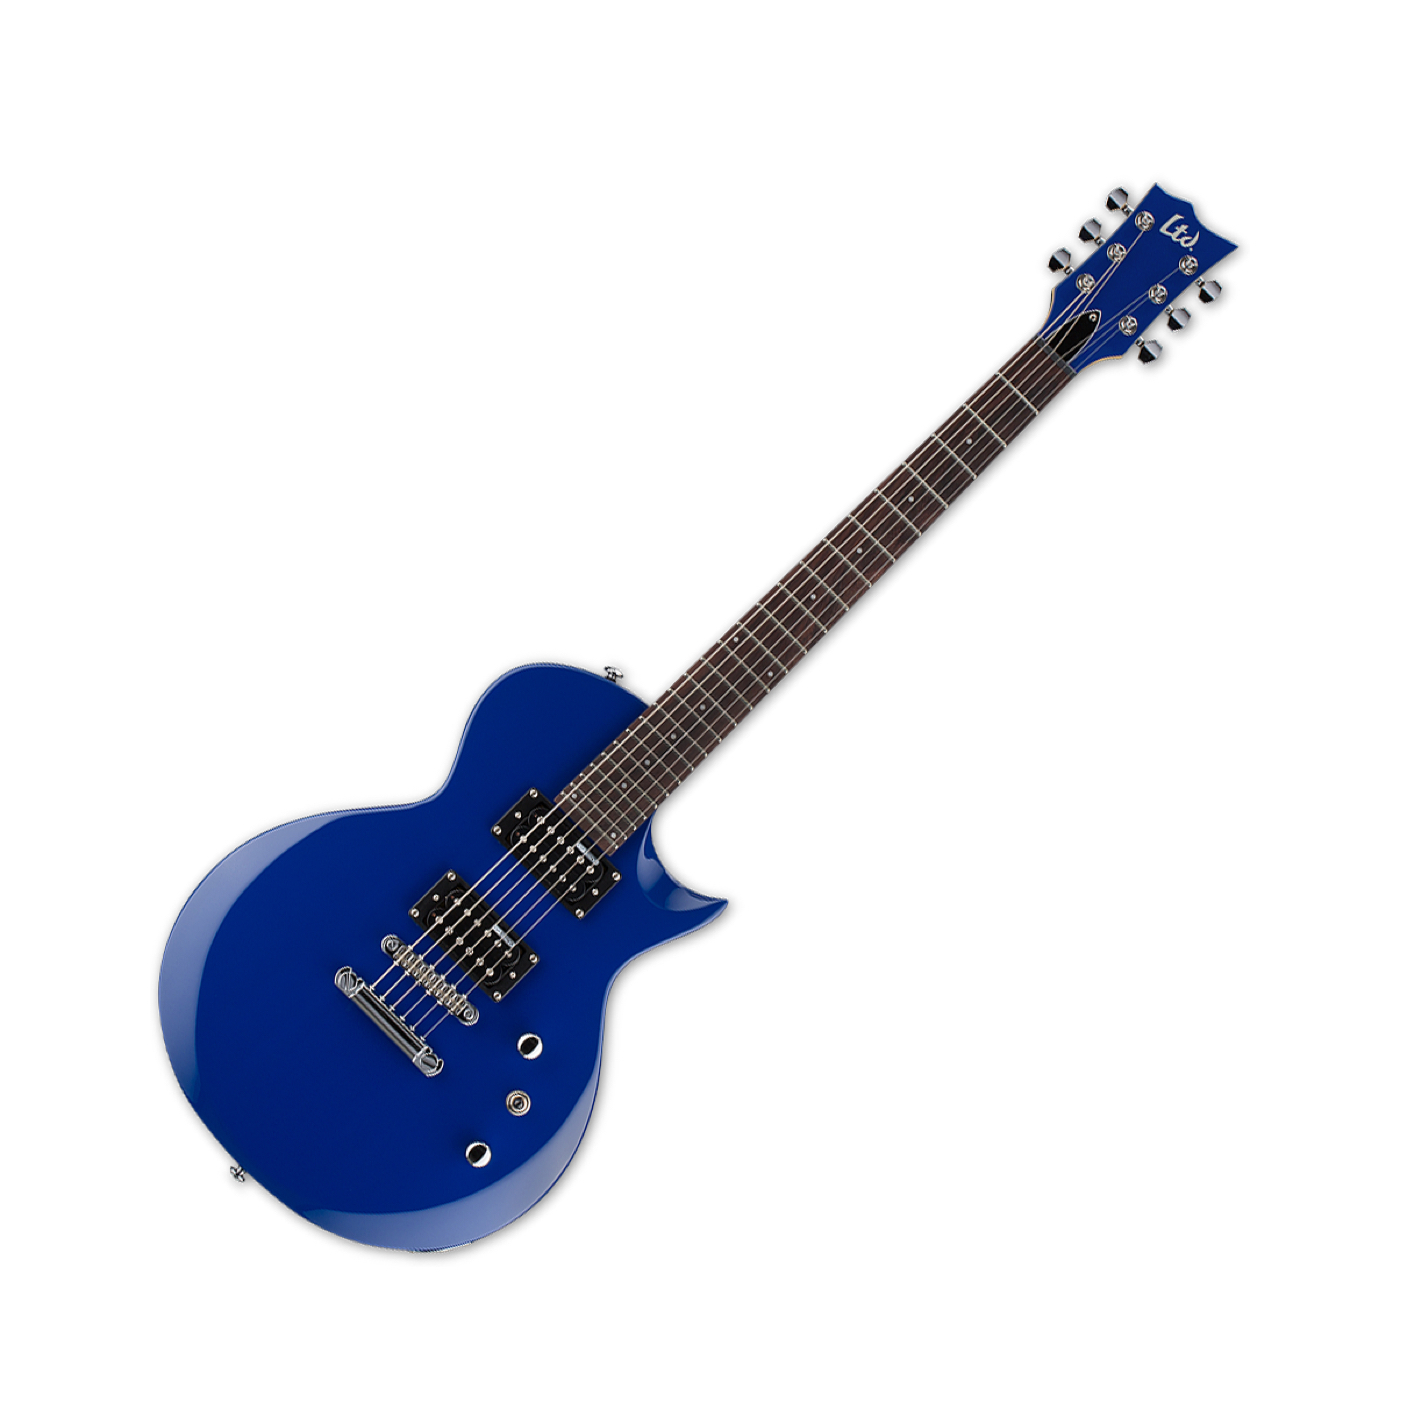 LTD EC-10 KIT electric guitar in blue with gigbag